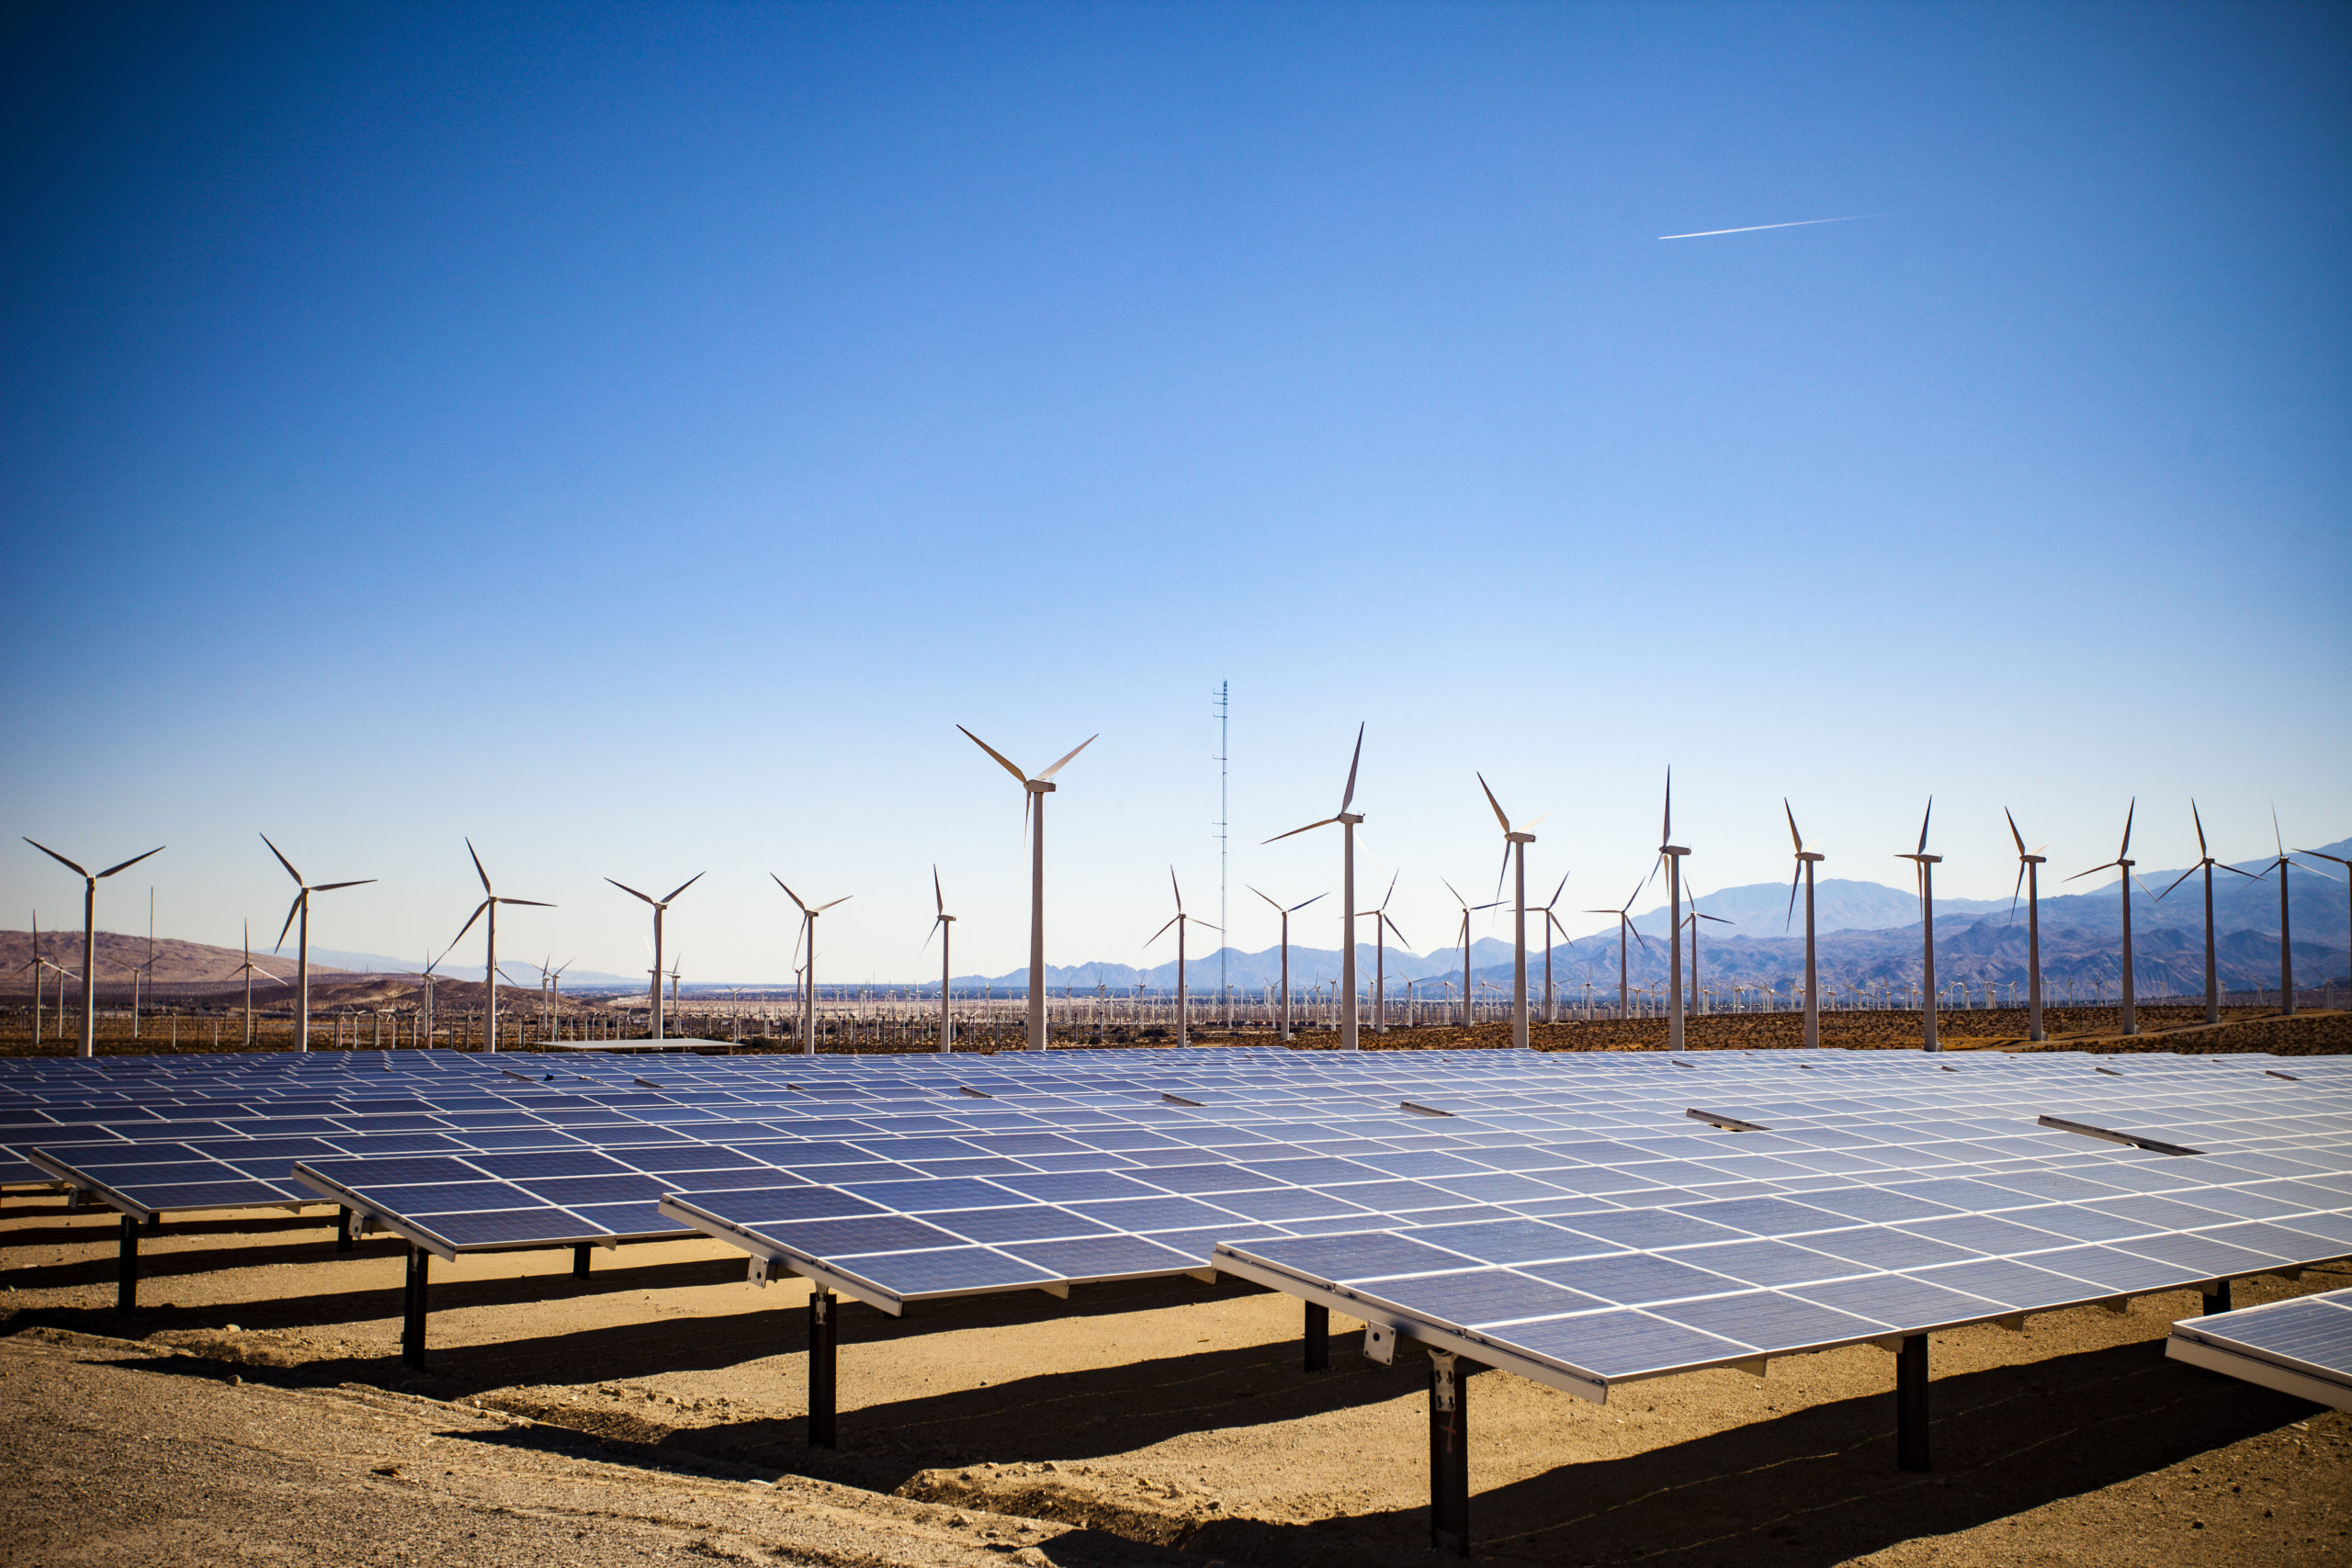 Nest appoints Octopus Renewables to invest in clean energy projects